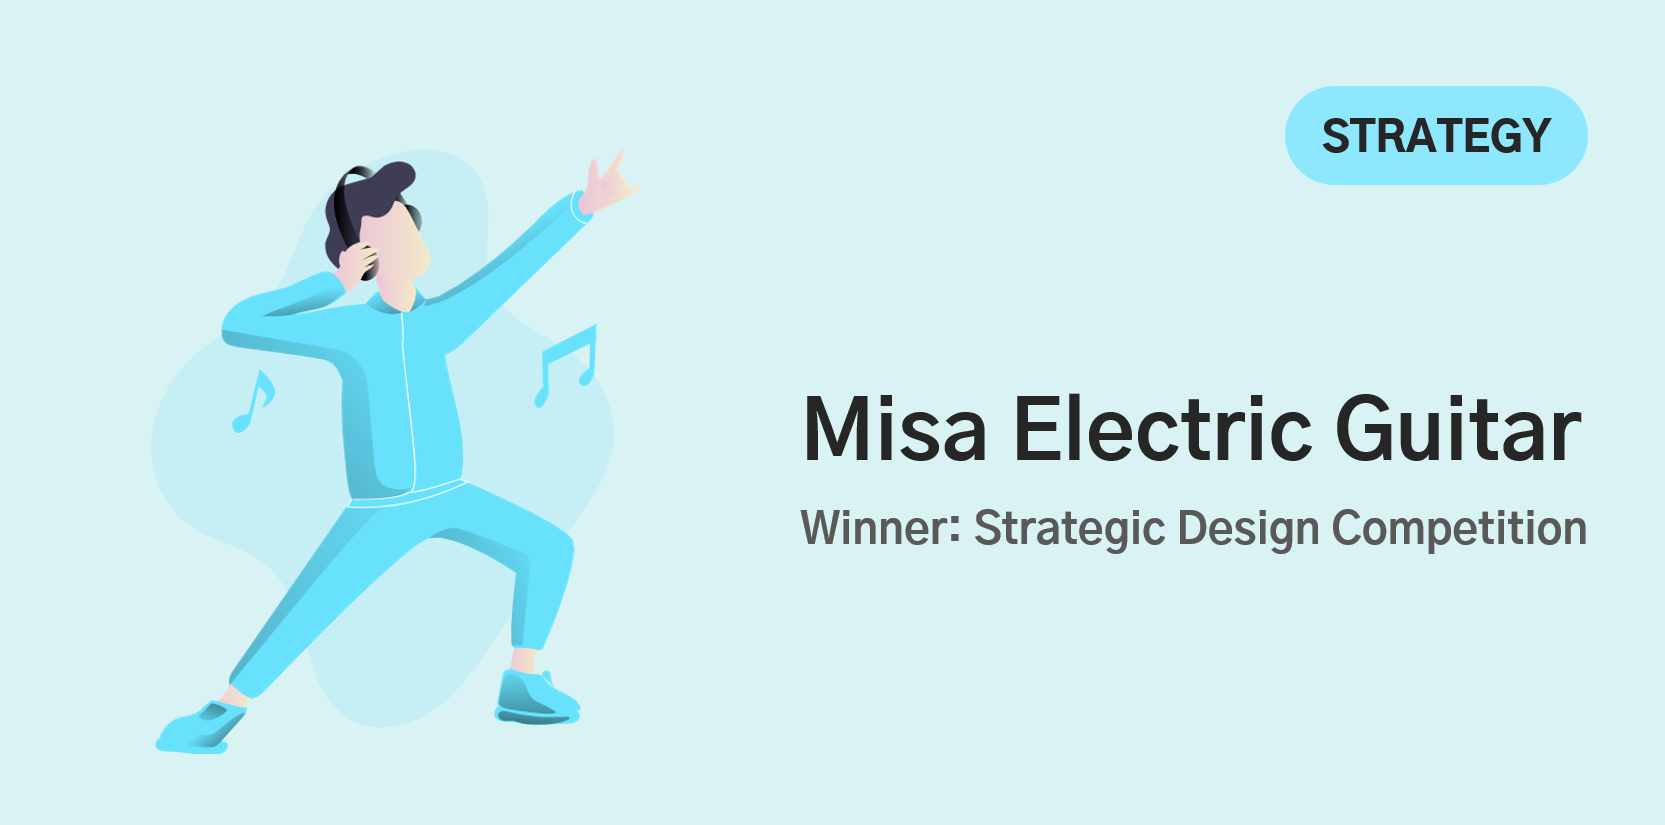 Strategic Design for Misa Spectra